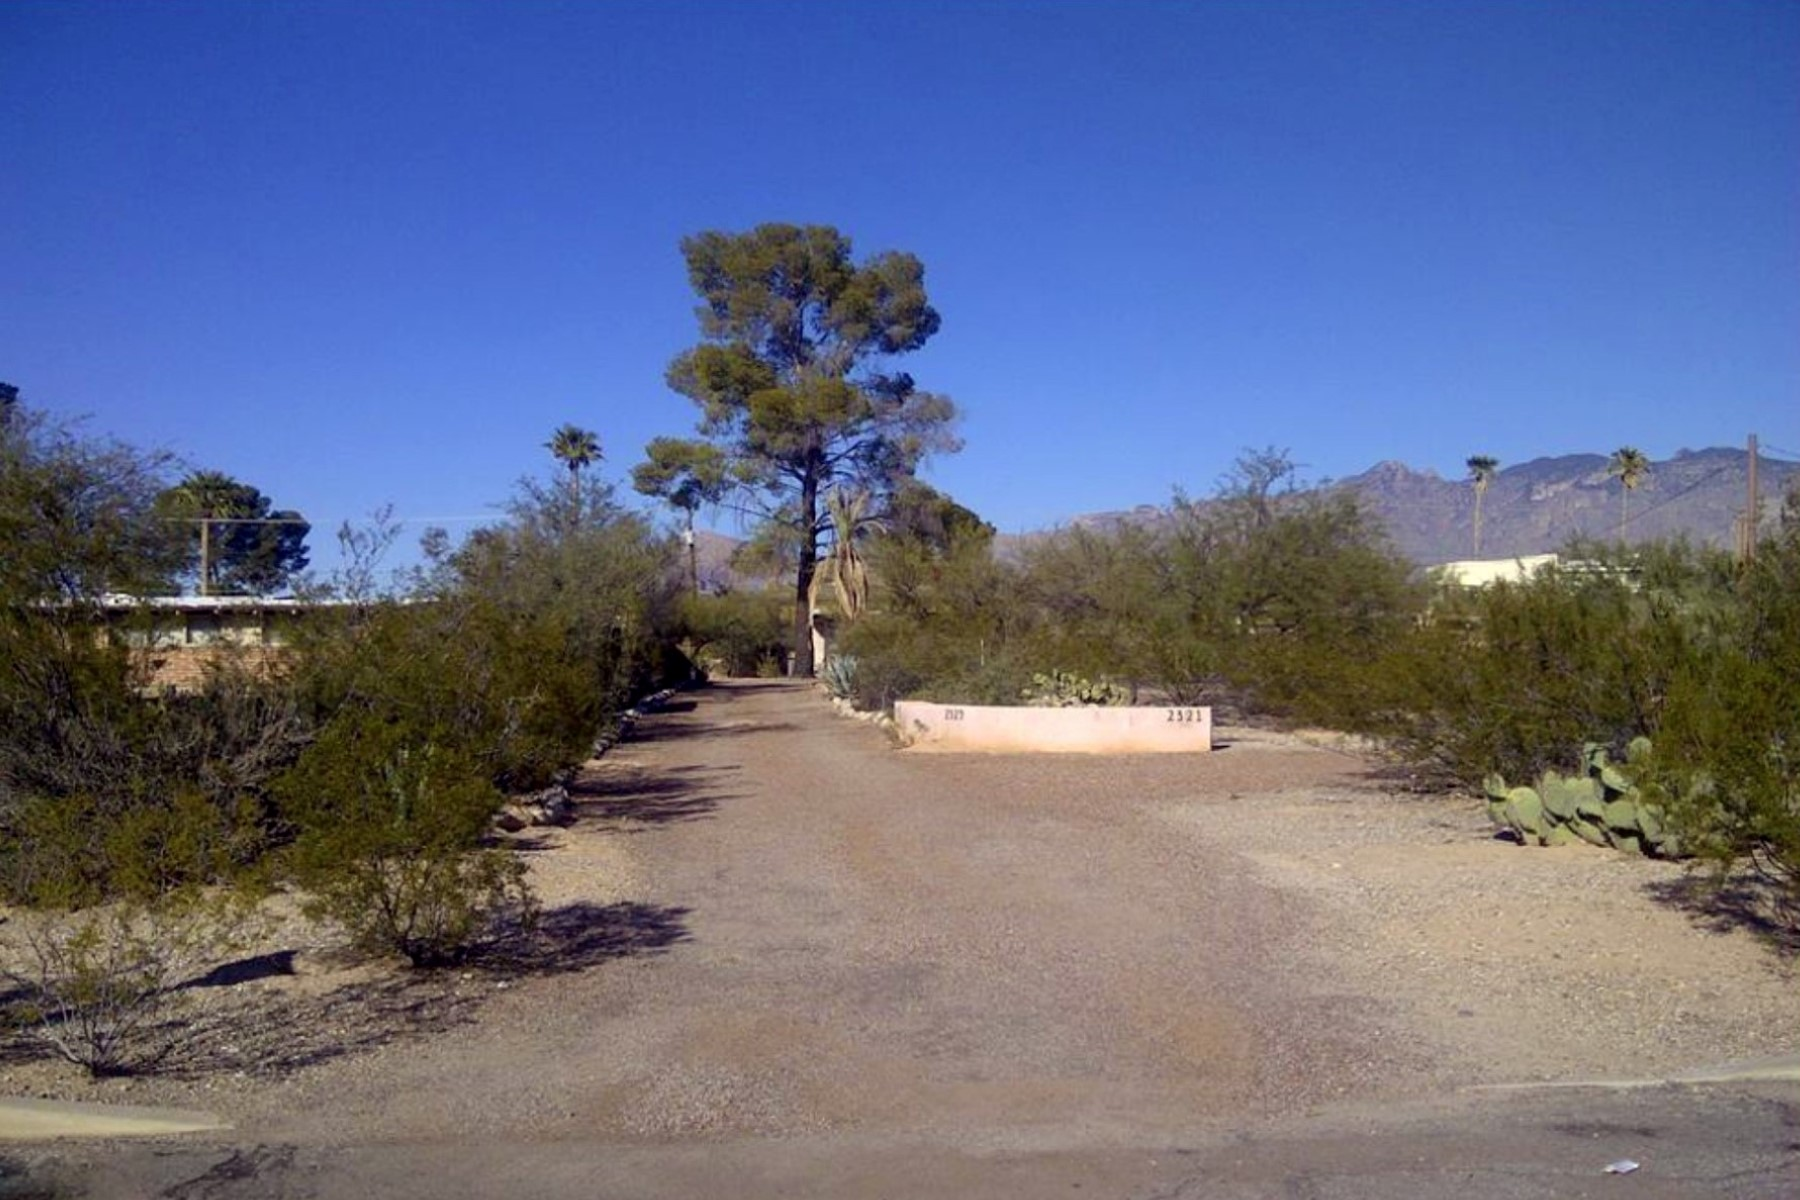 Земля для того Продажа на Large Rarely Available Lot In Desirable In-Town Neighborhood Of Richland Heights 2321 E Greenlee Rd Tucson, Аризона 85719 Соединенные Штаты